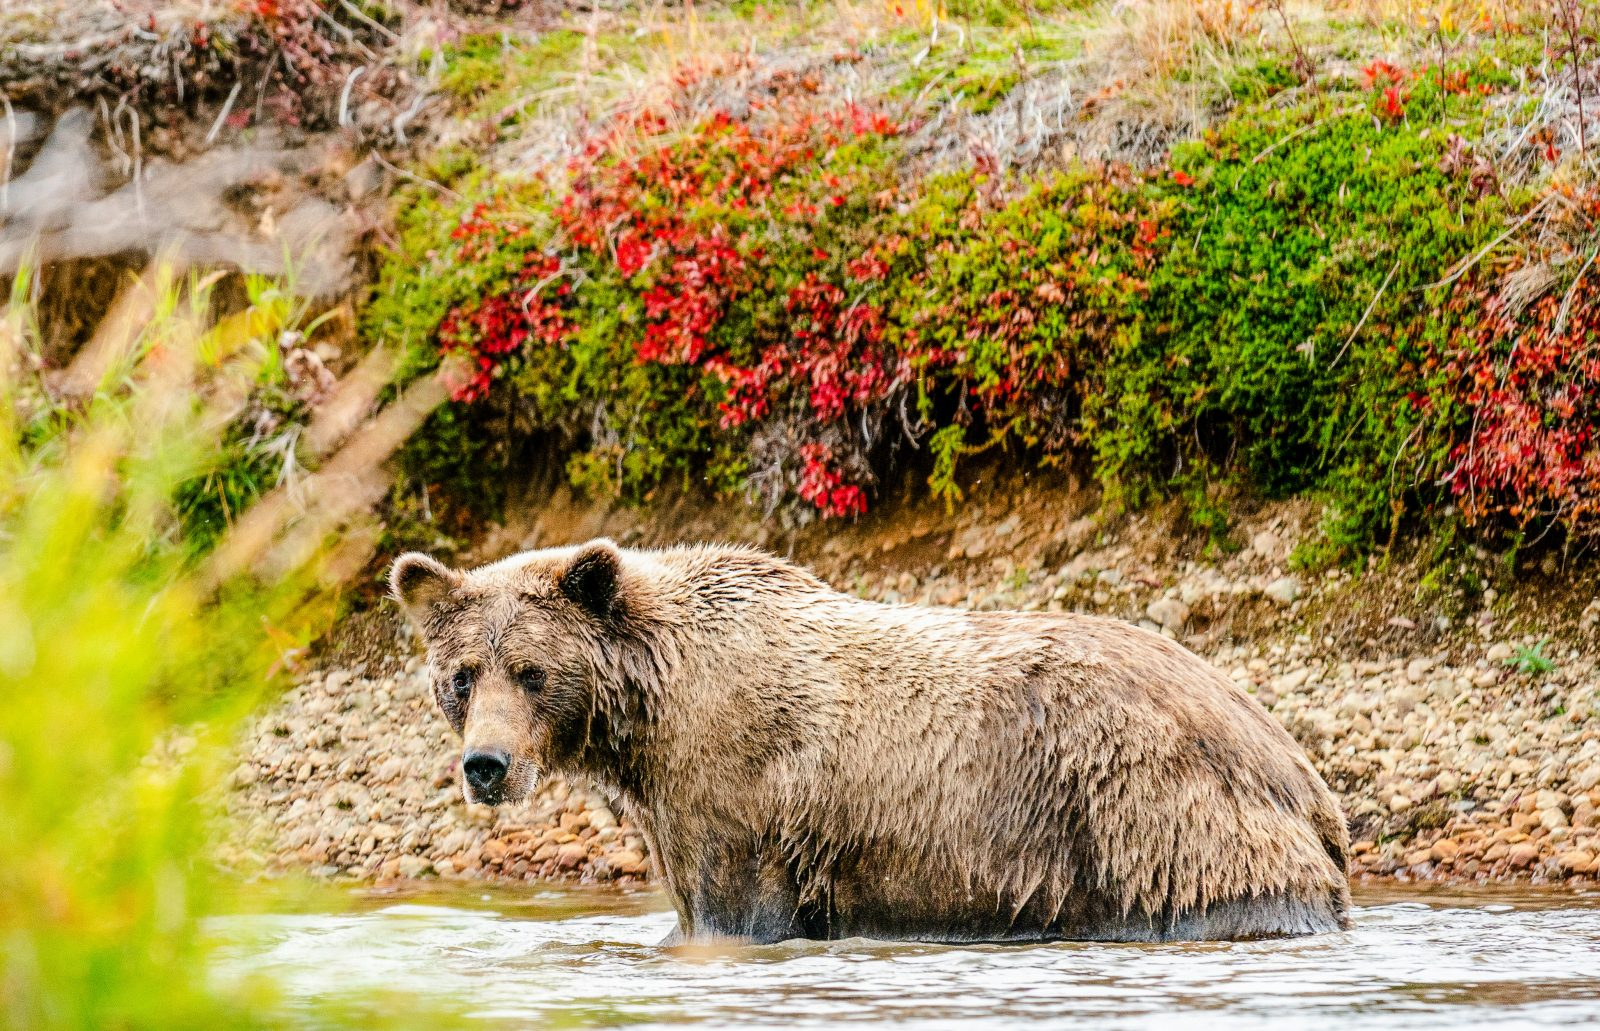 Mama Grizzly Goin' Fishing